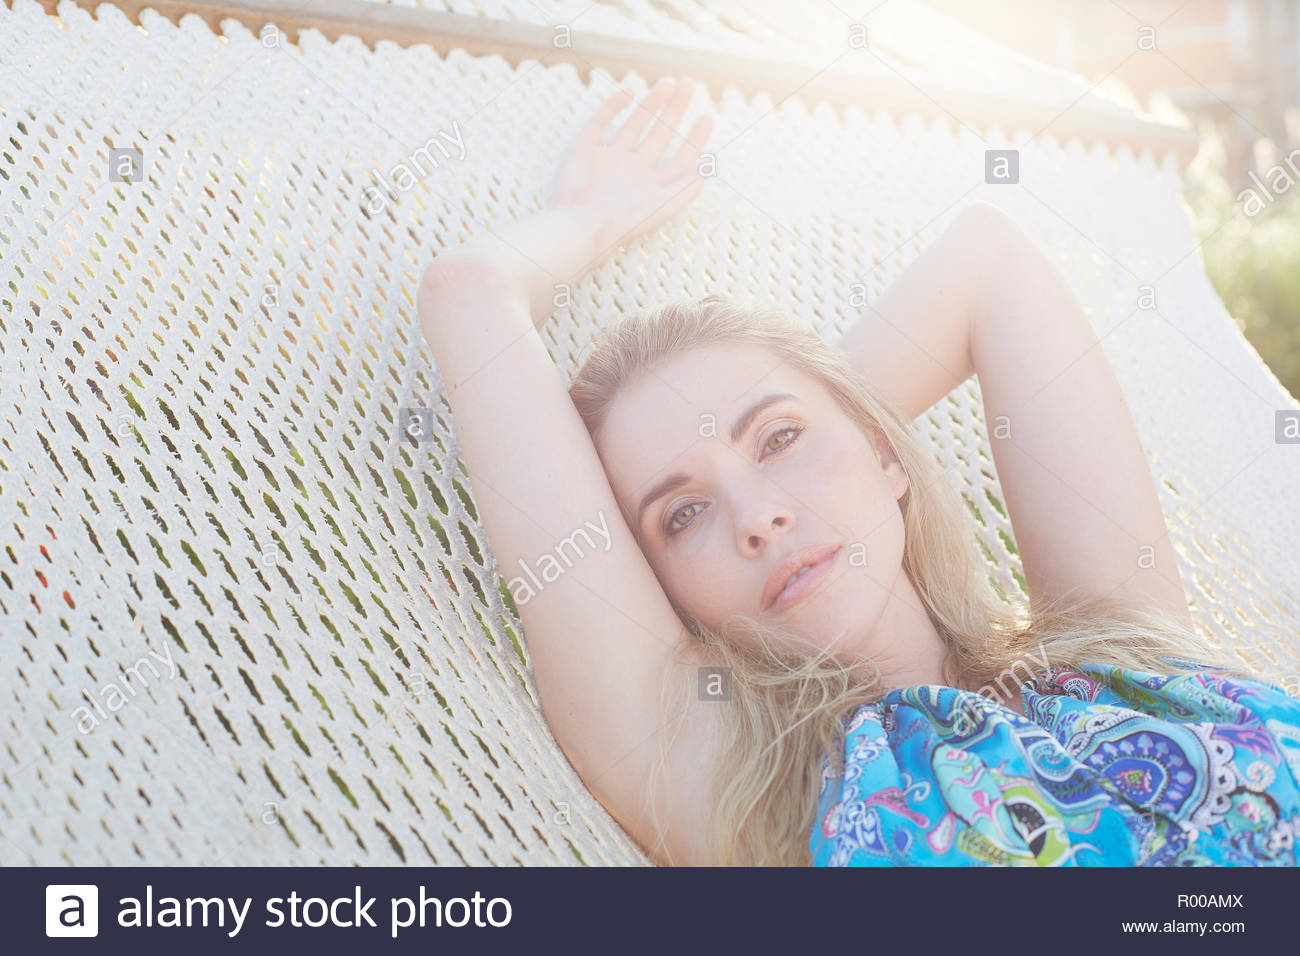 Blond haired young woman lying on hammock - Stock Image